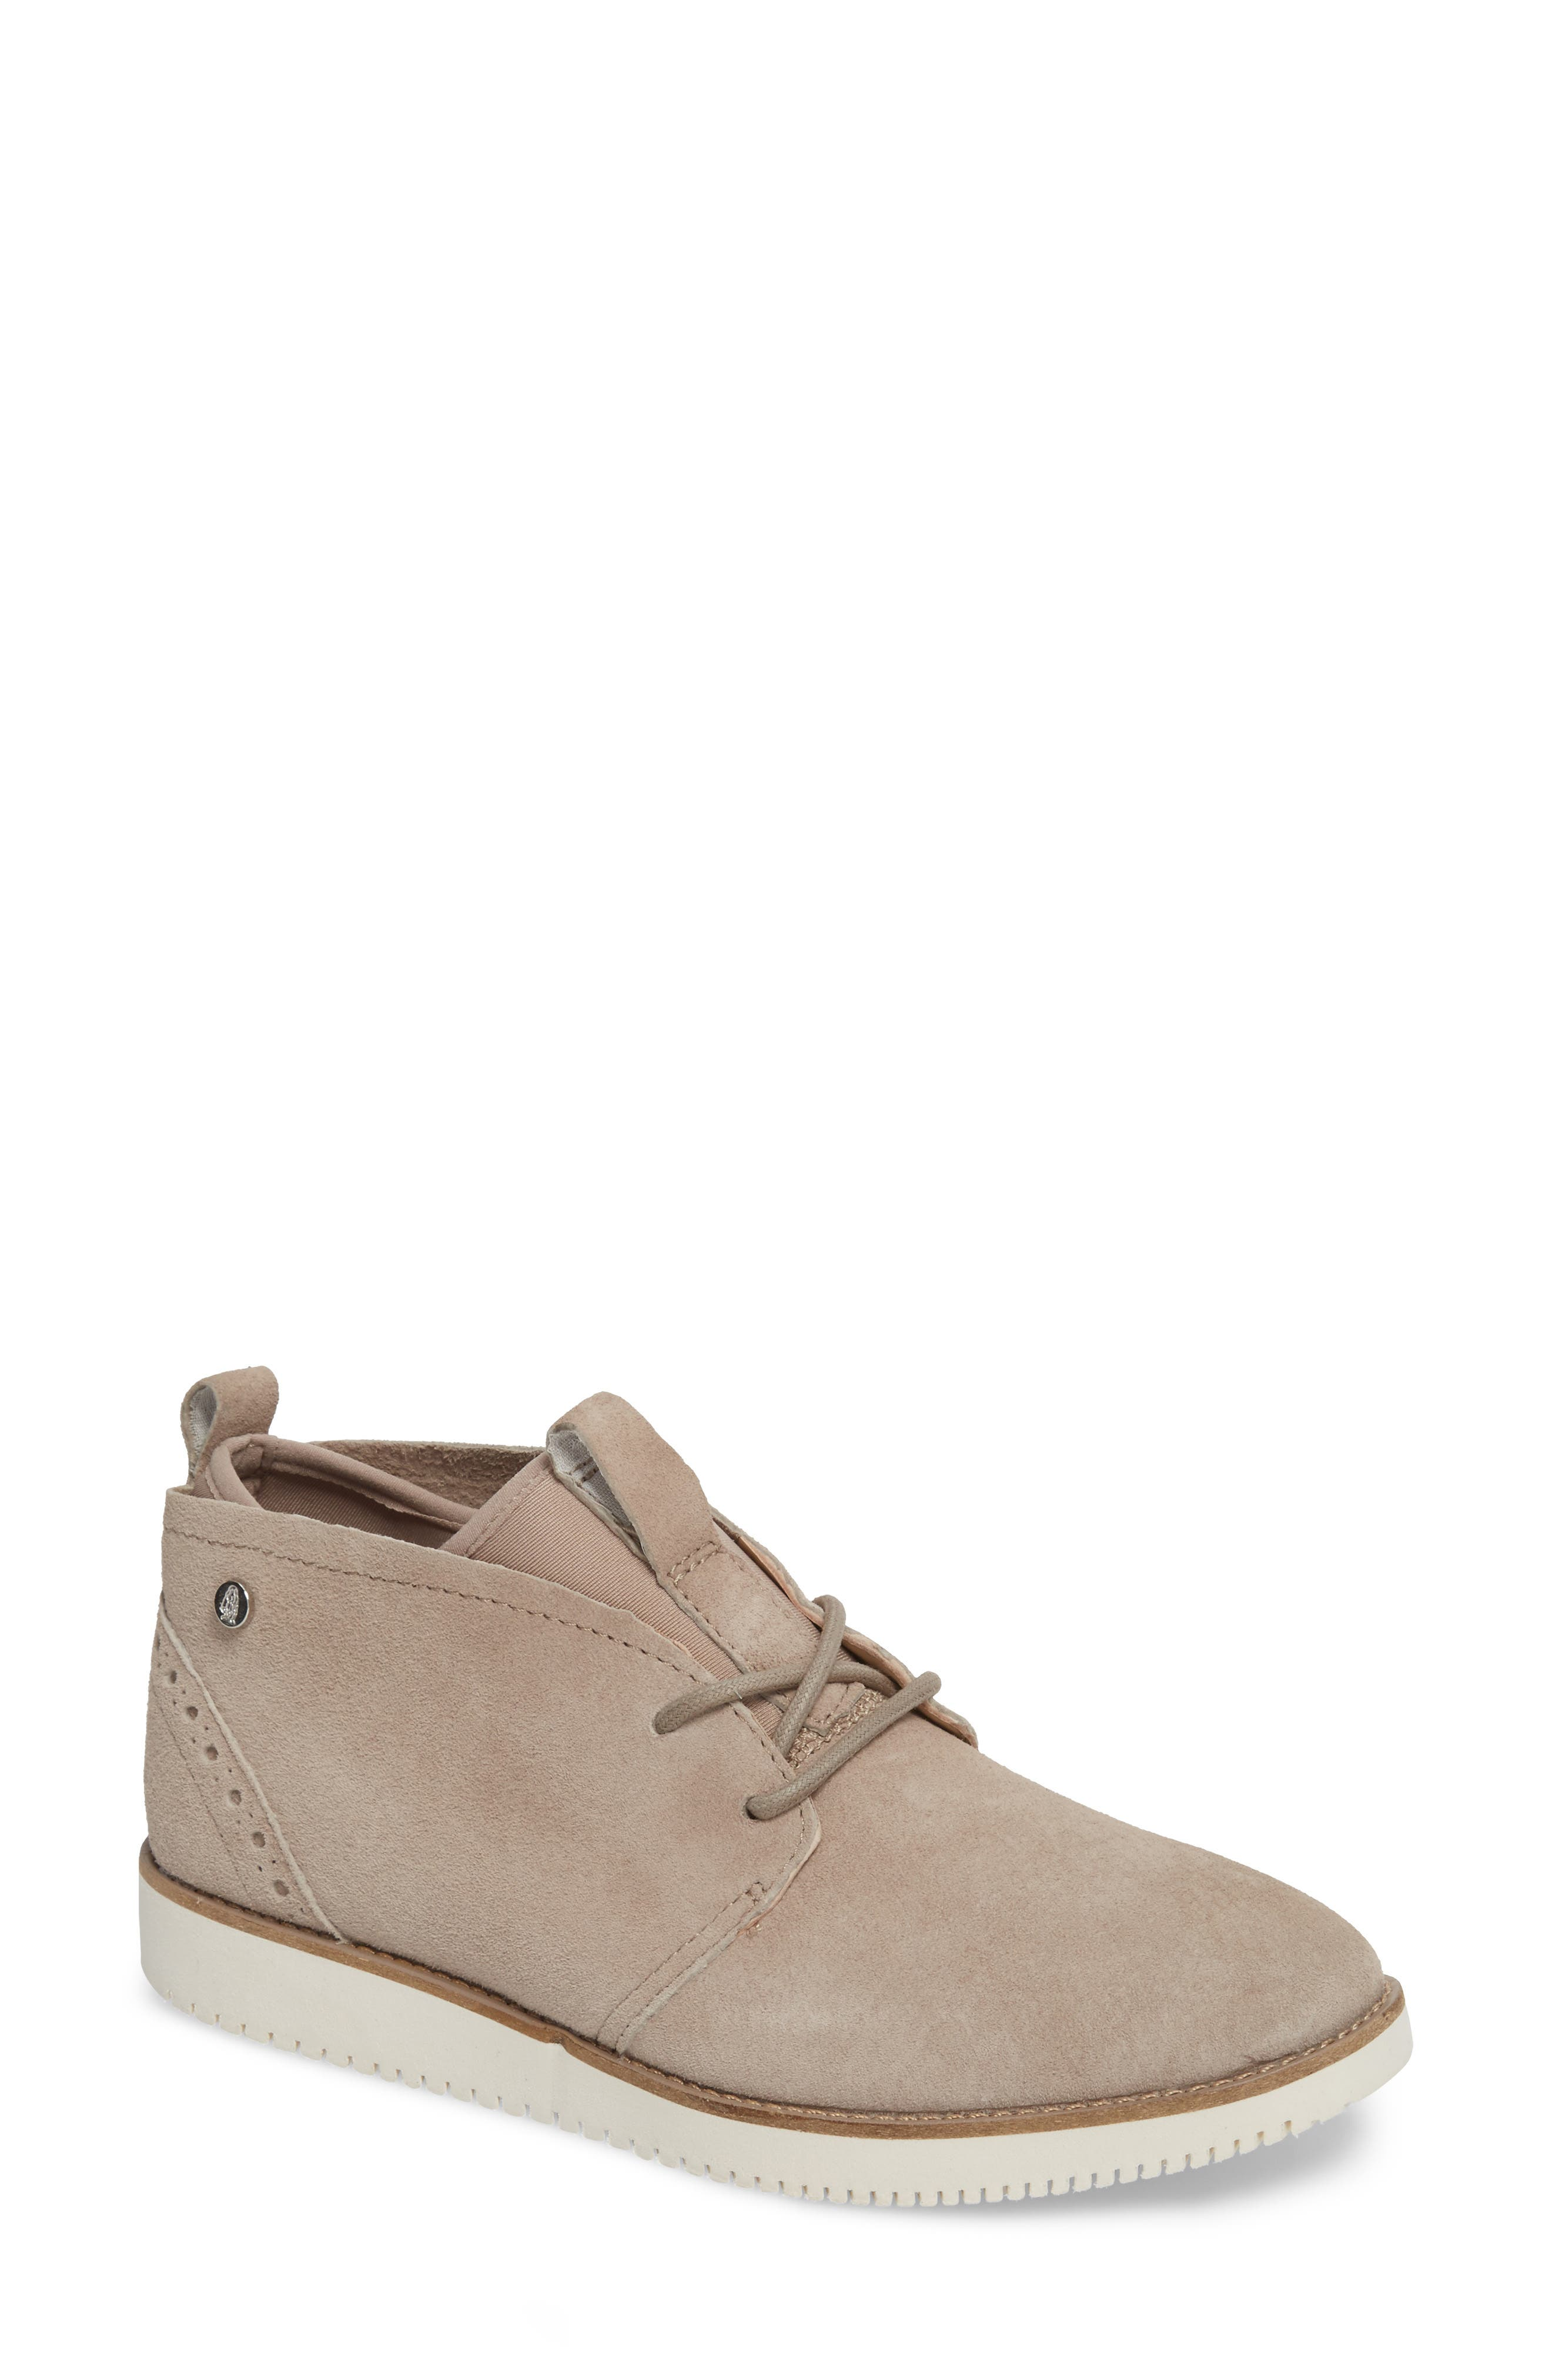 Hush Puppies Chowchow Chukka Boot- Grey